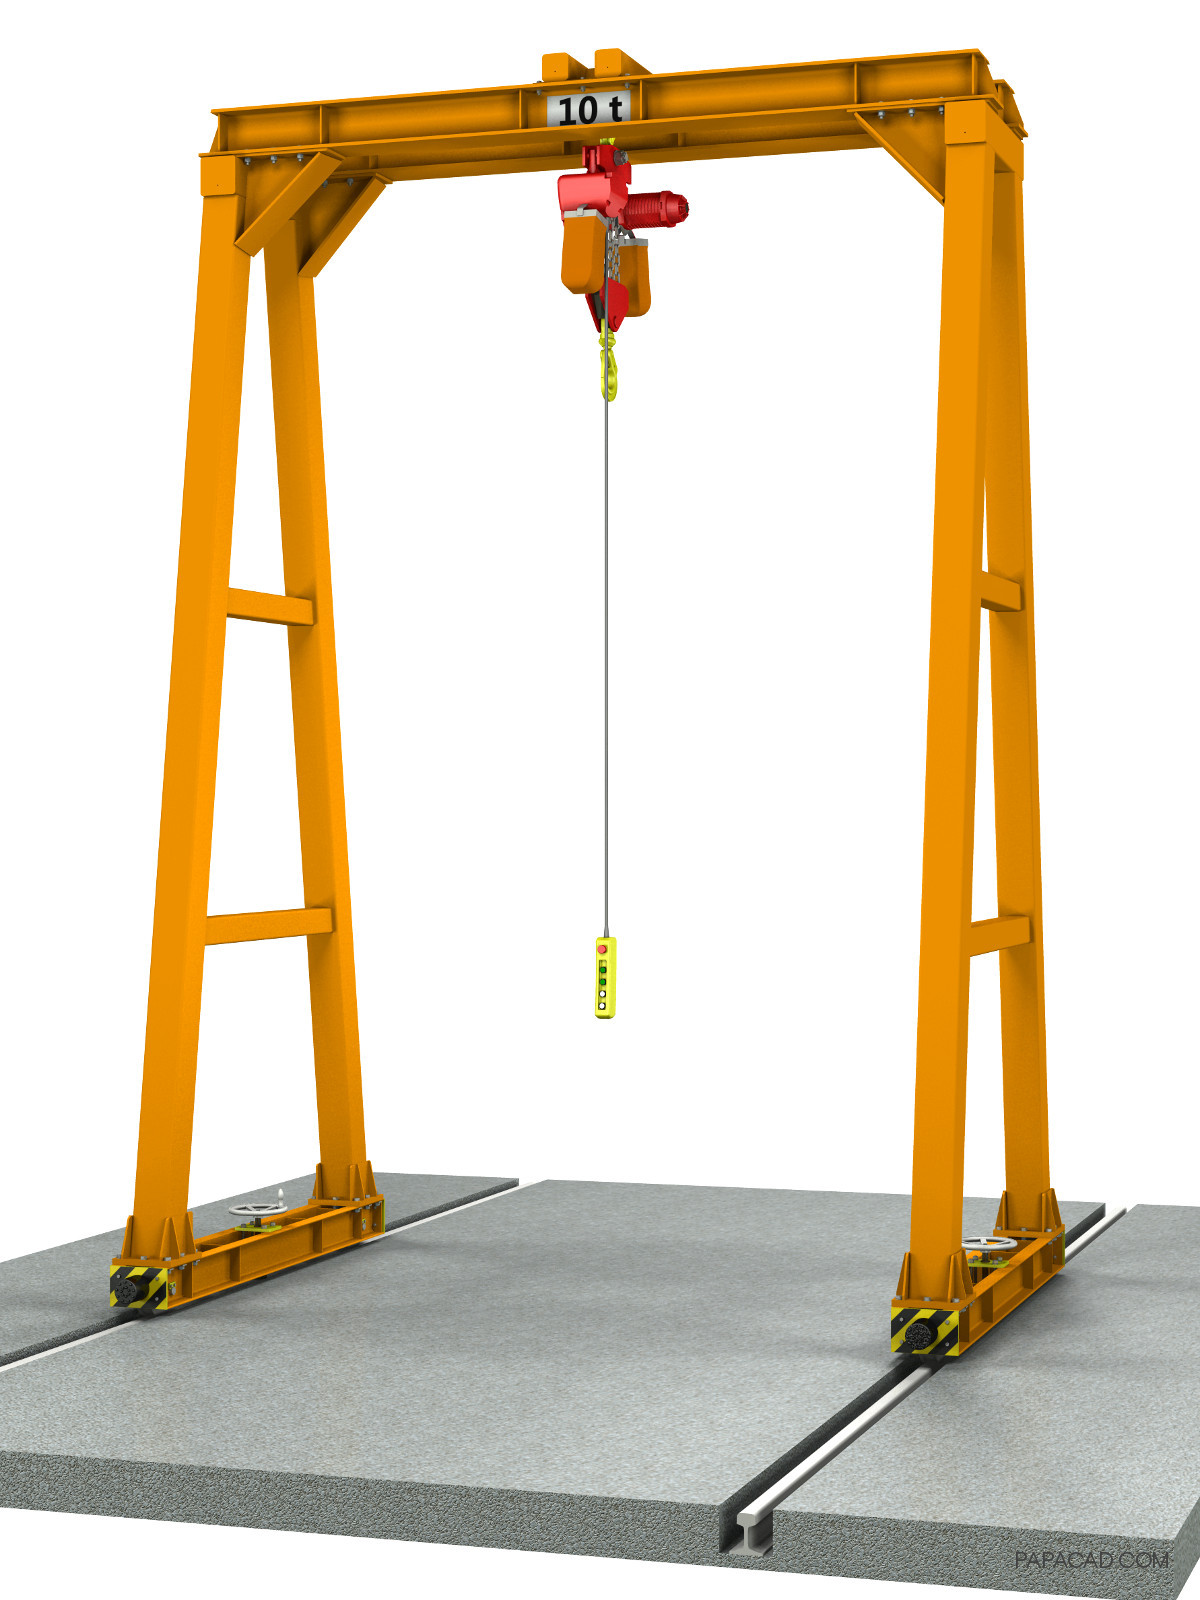 10t DIY Gantry crane